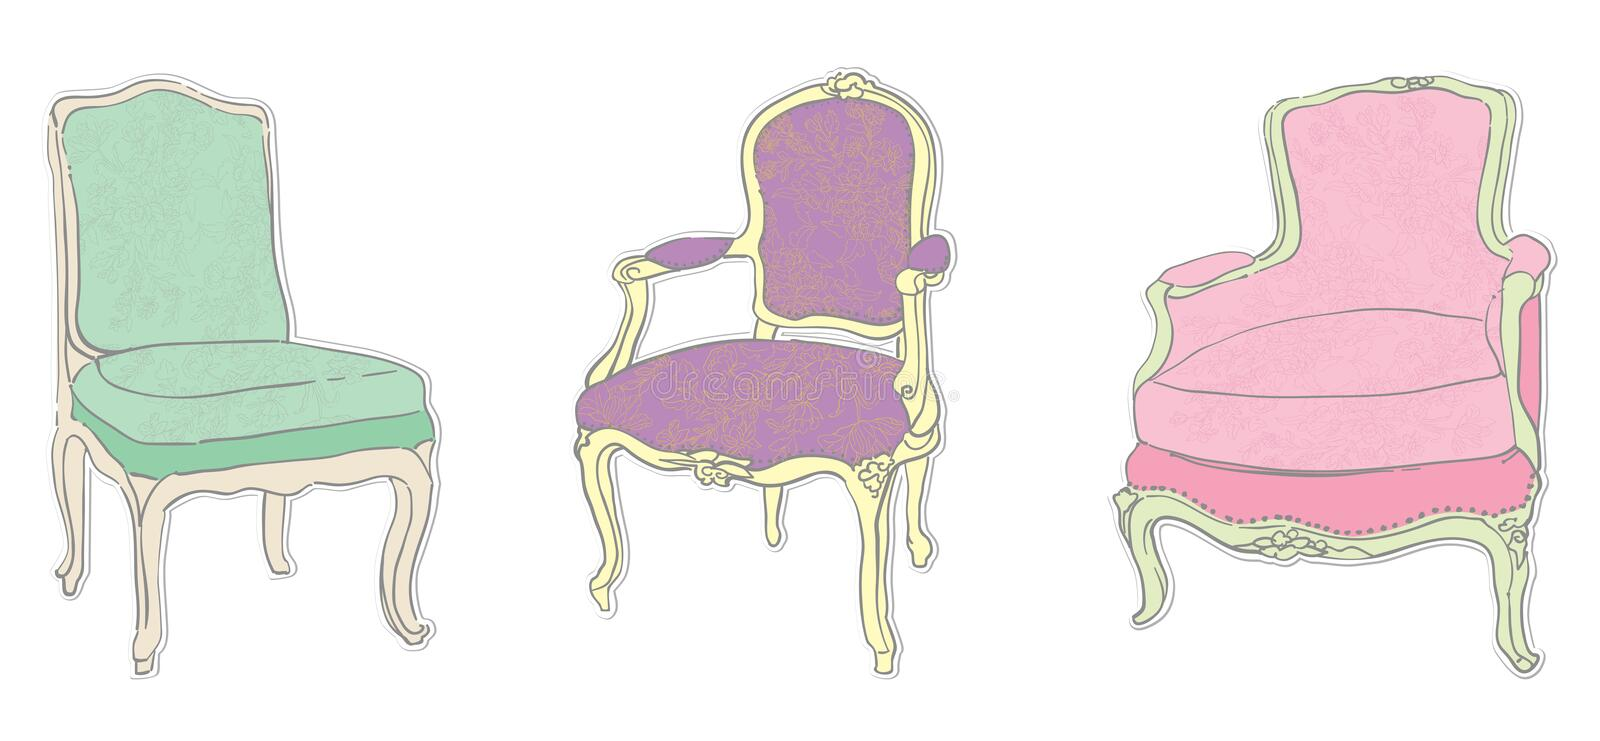 antikviteten chairs rokokoetiketter royaltyfri illustrationer